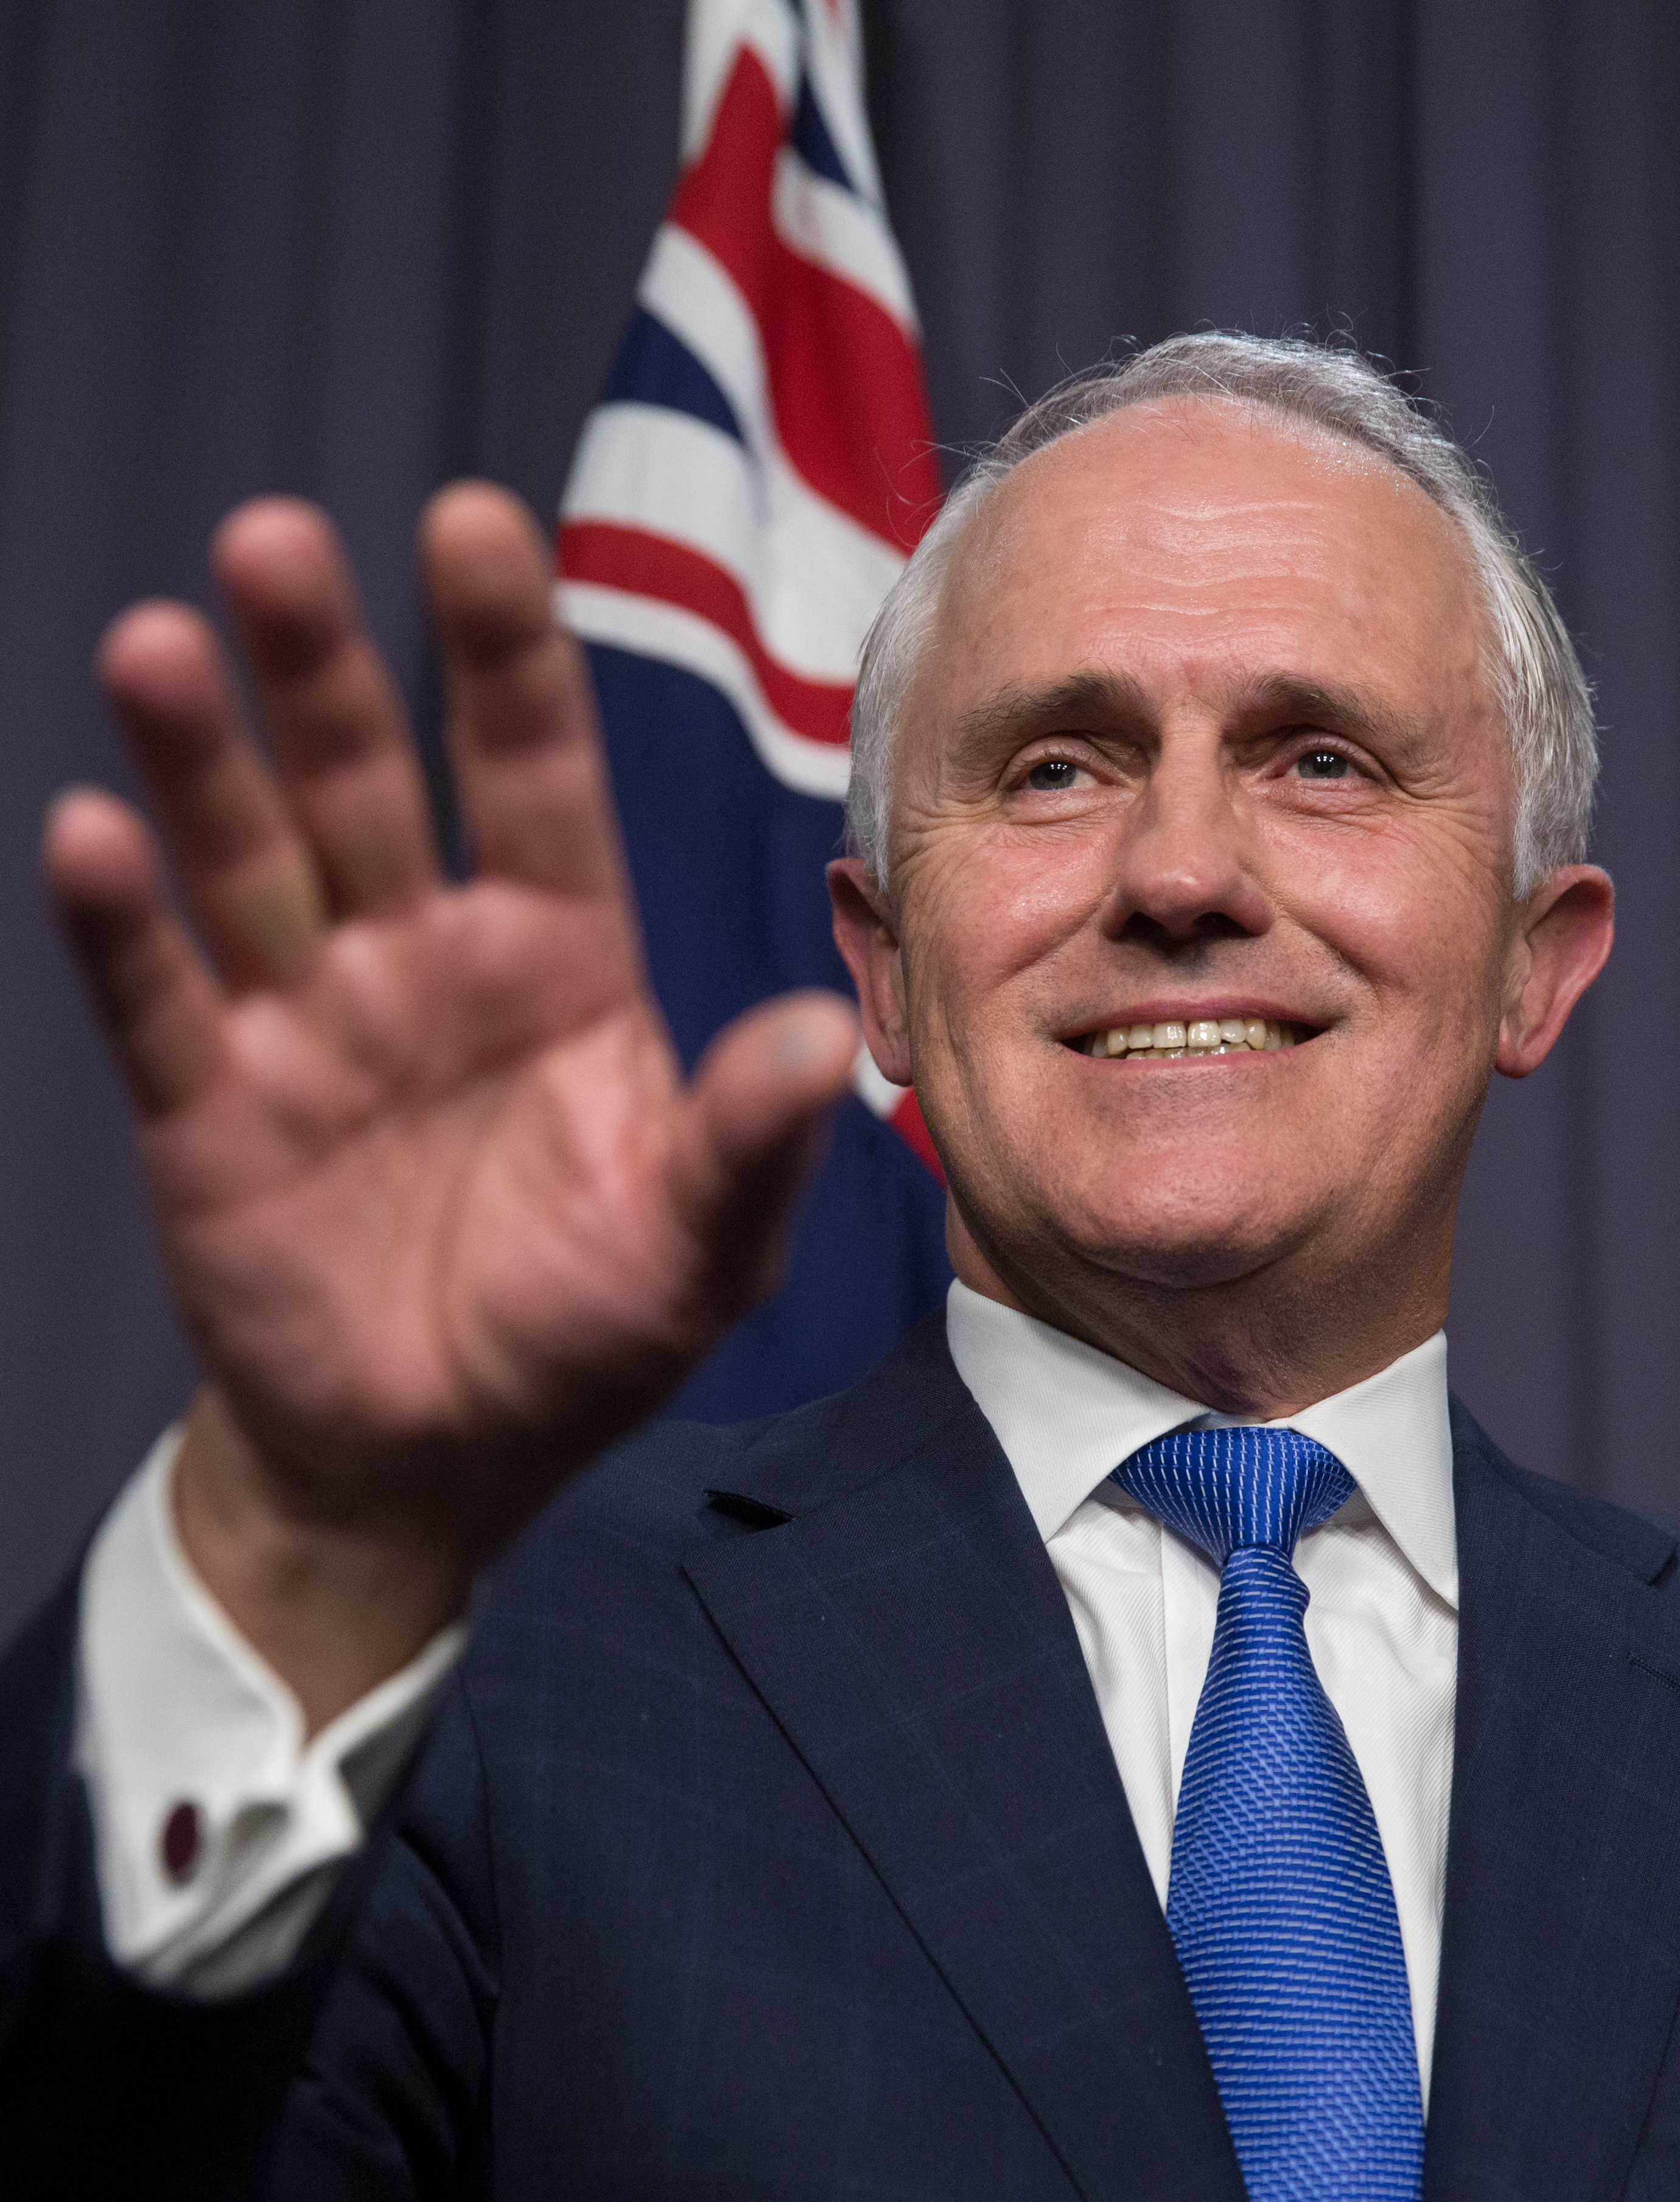 Malcolm Turnbull comments after an Australian Liberal Party meeting where he has been elected at the new party leader  at Parliament House in Canberra, Monday, Sept. 14, 2015.